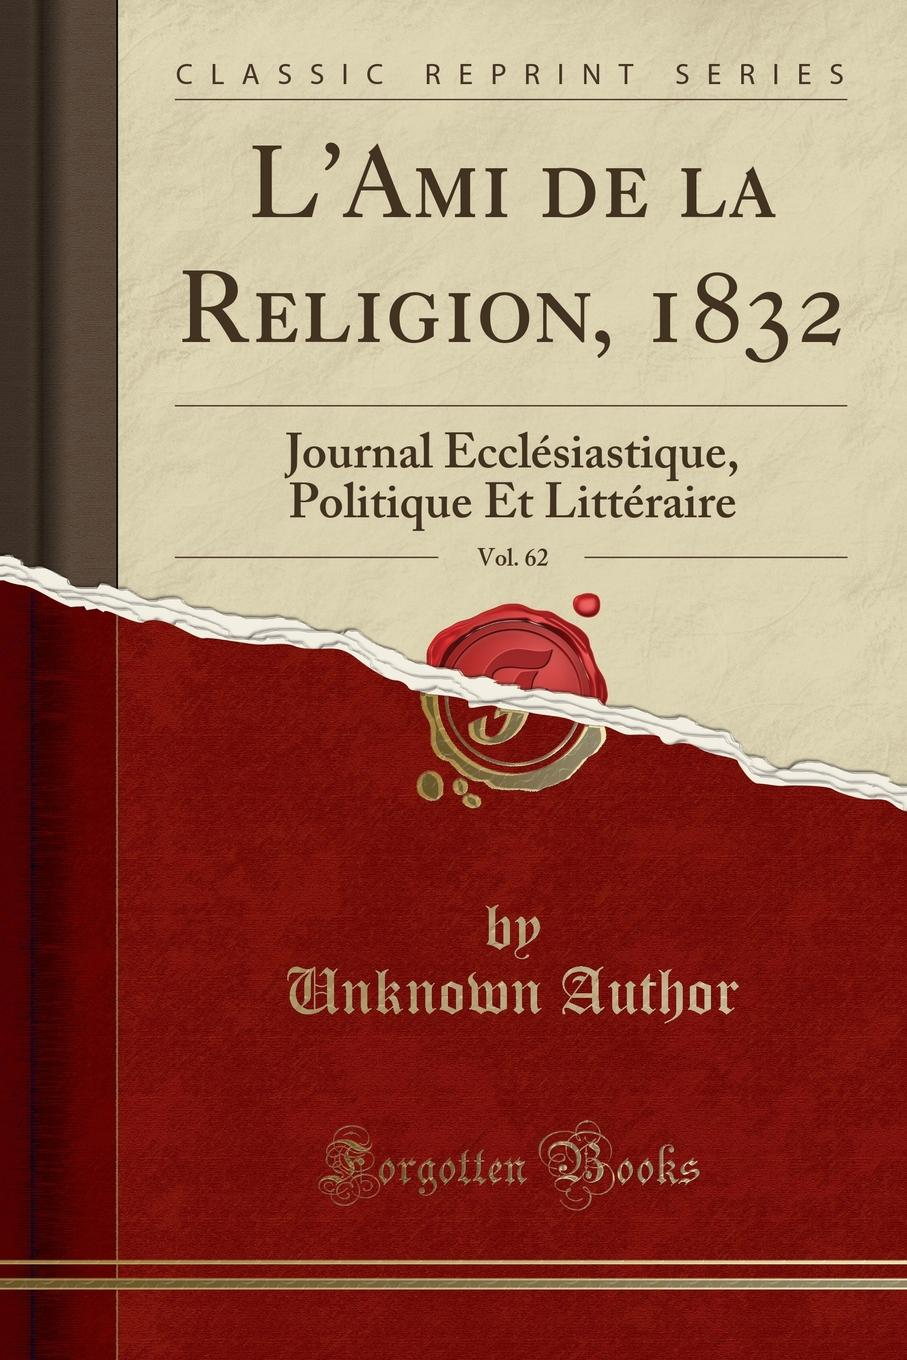 Unknown Author L.Ami de la Religion, 1832, Vol. 62. Journal Ecclesiastique, Politique Et Litteraire (Classic Reprint) jenifer orléans